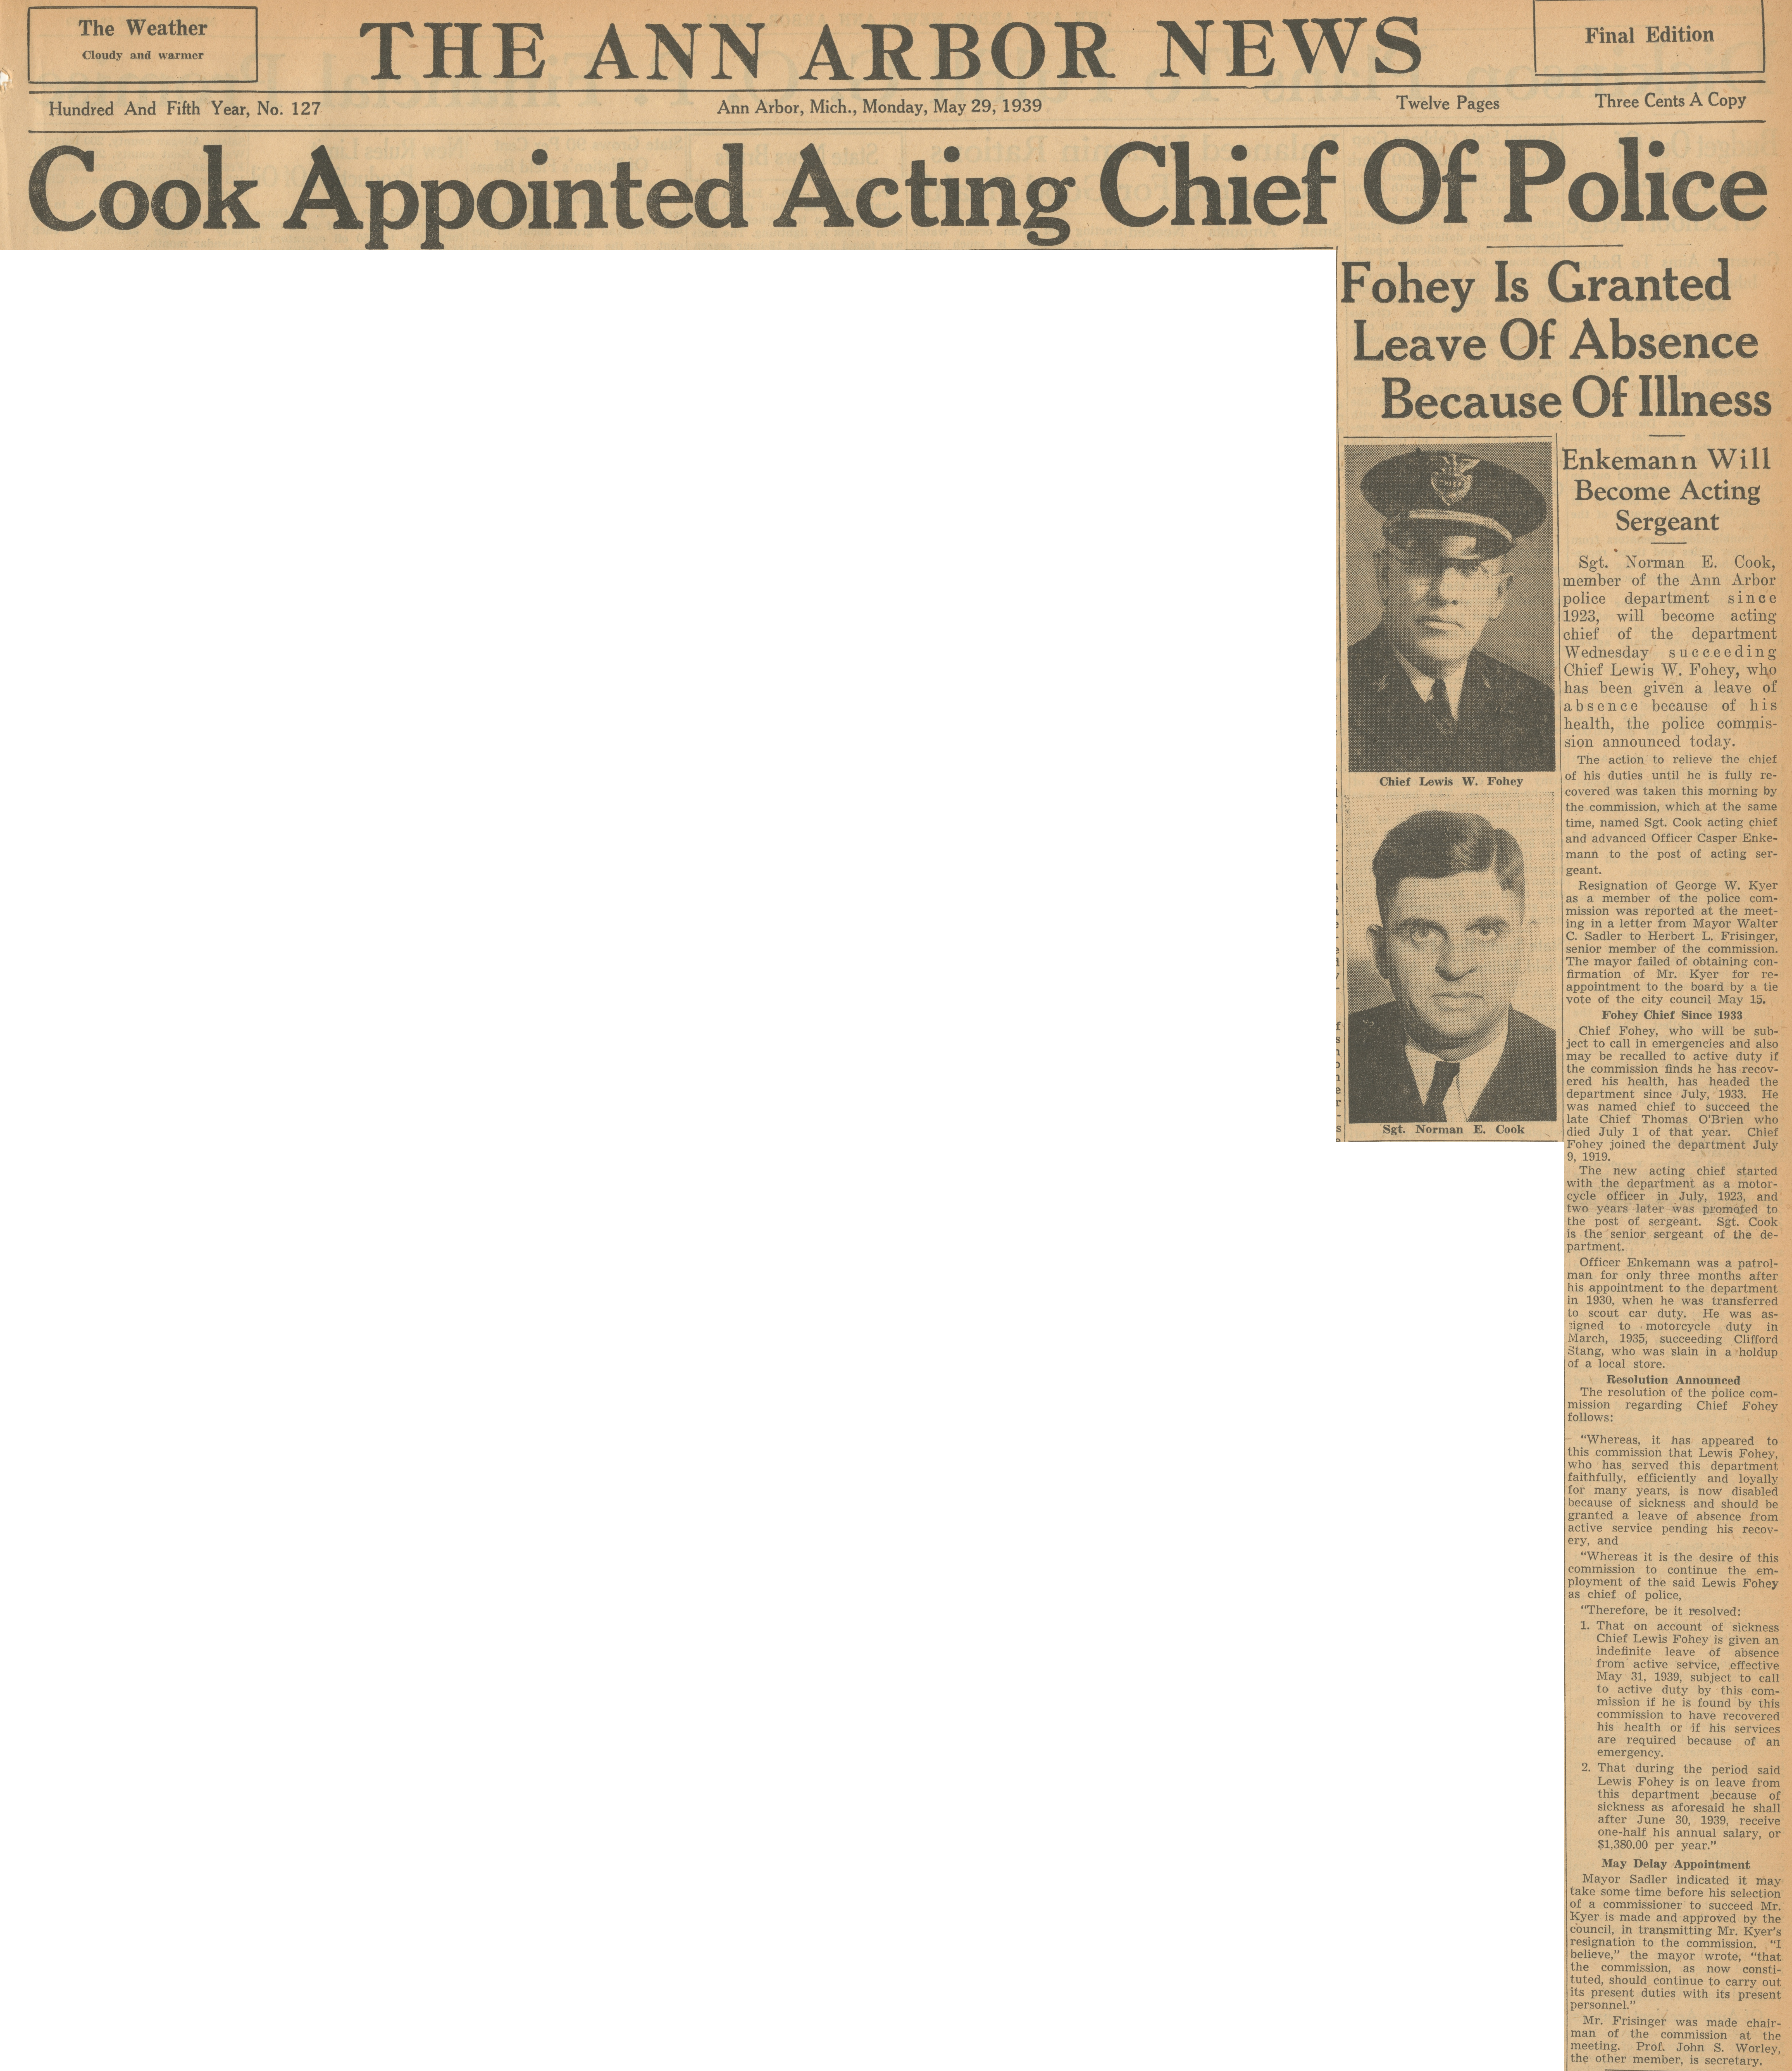 Cook Appointed Acting Chief Of Police - Fohey Is Granted Leave of Absence Because of Illness image